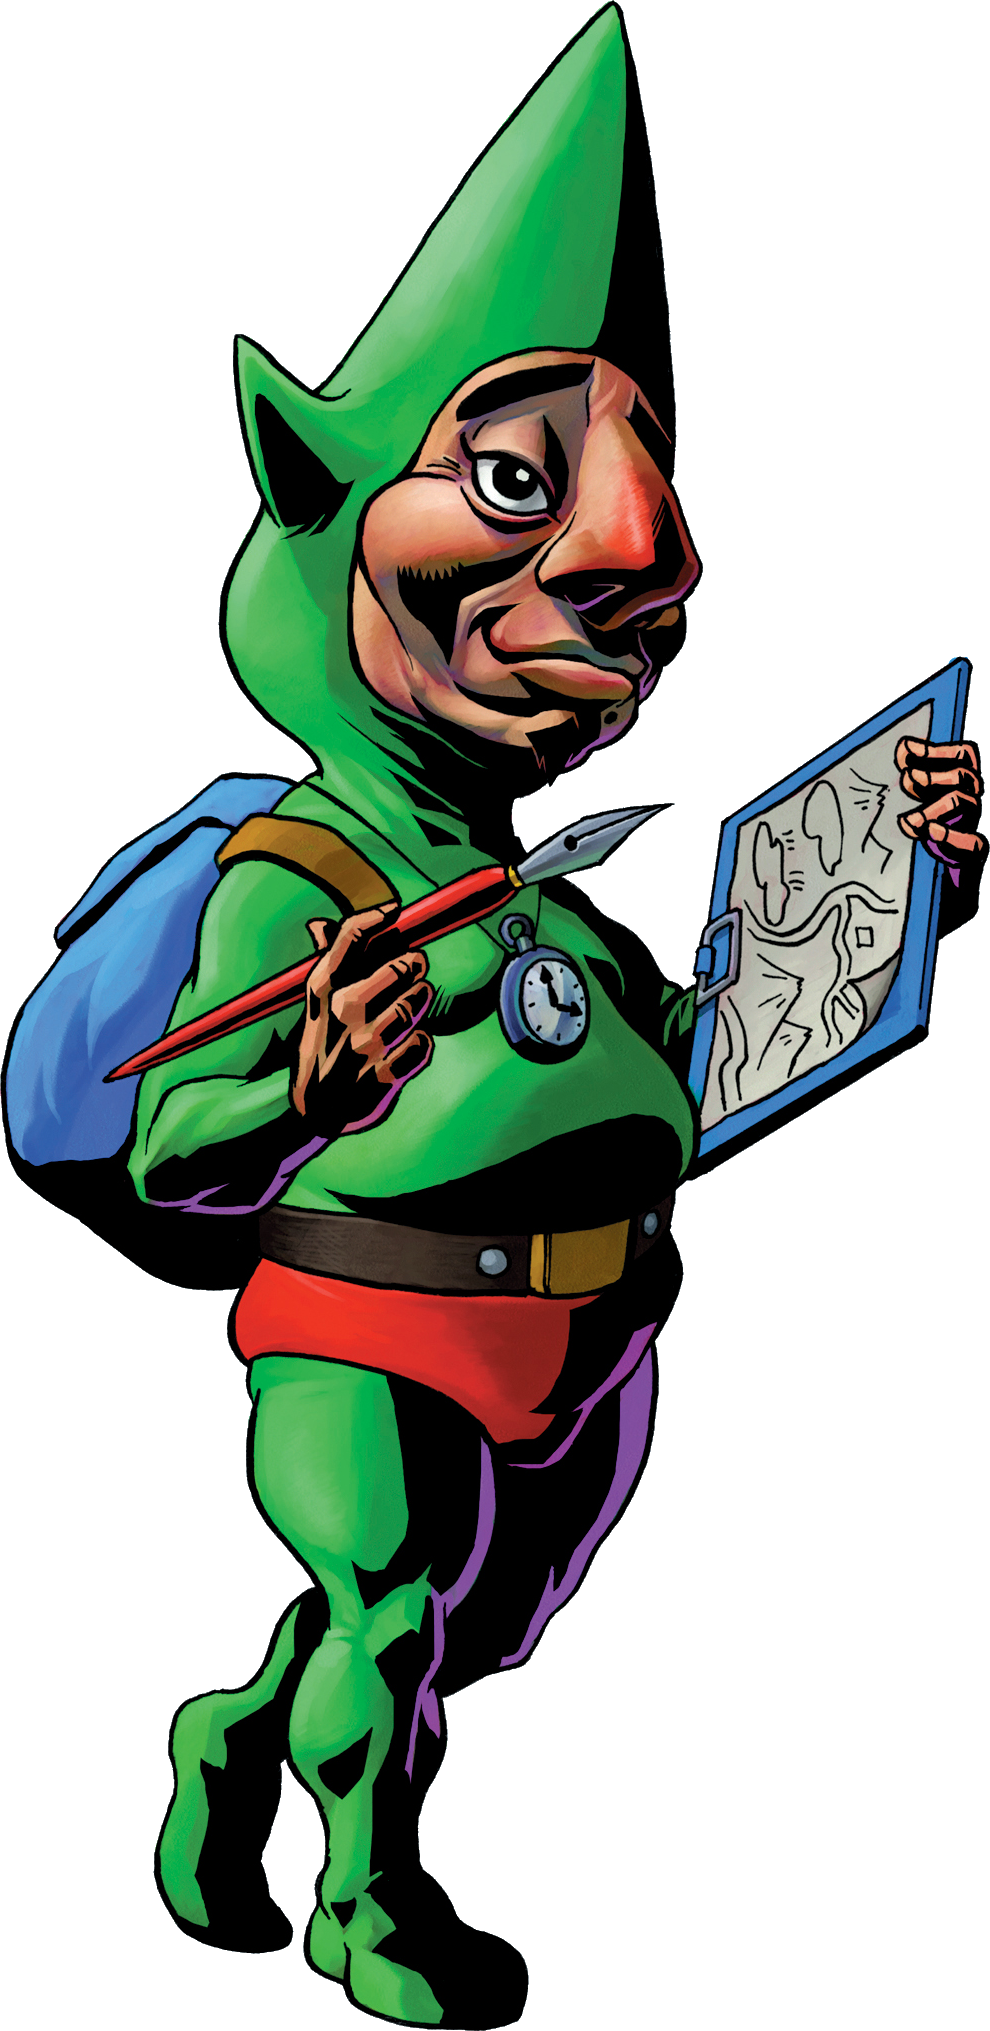 Tingle_Artwork_(Majora%27s_Mask).png